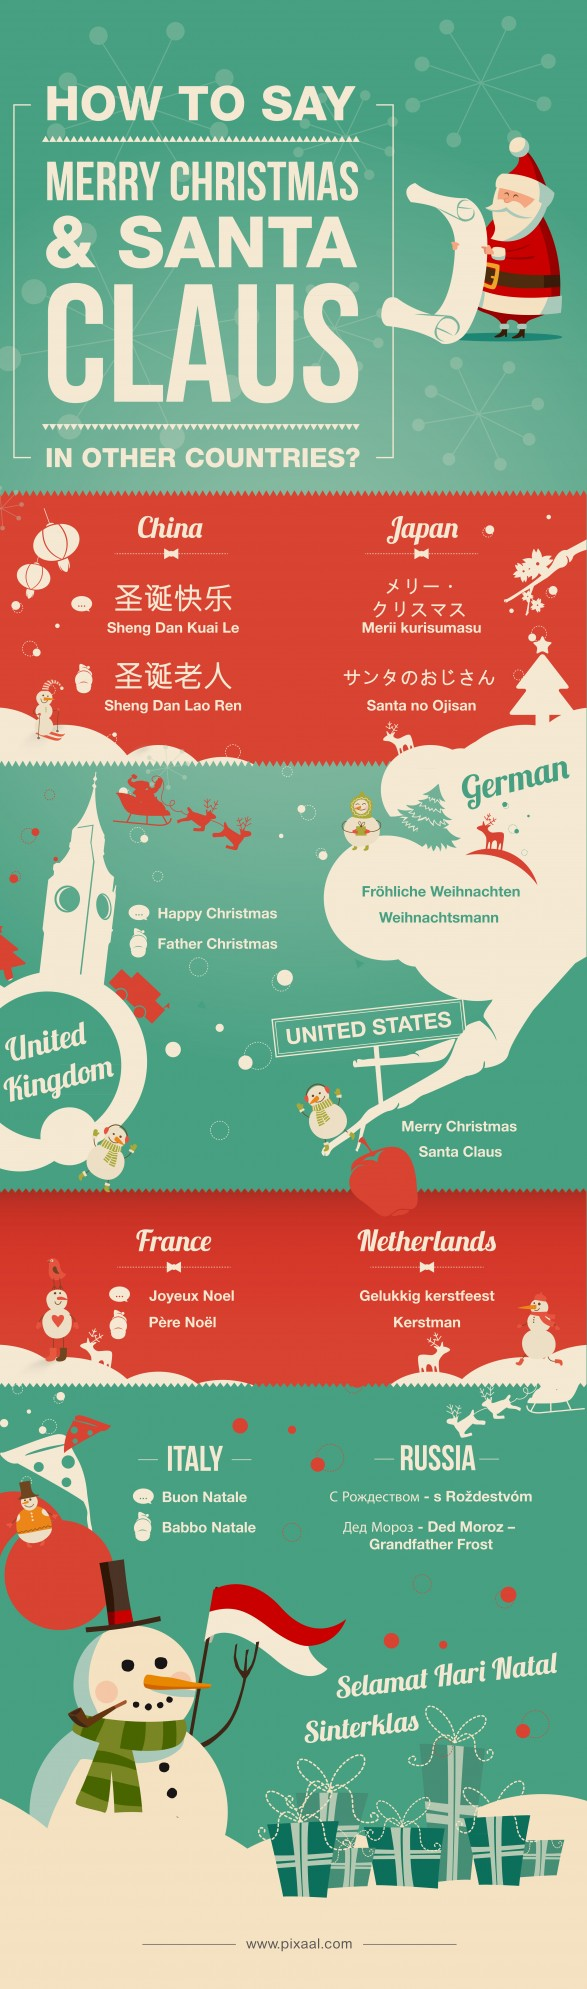 how-to-say-merry-christmas-santa-claus-in-other-countries